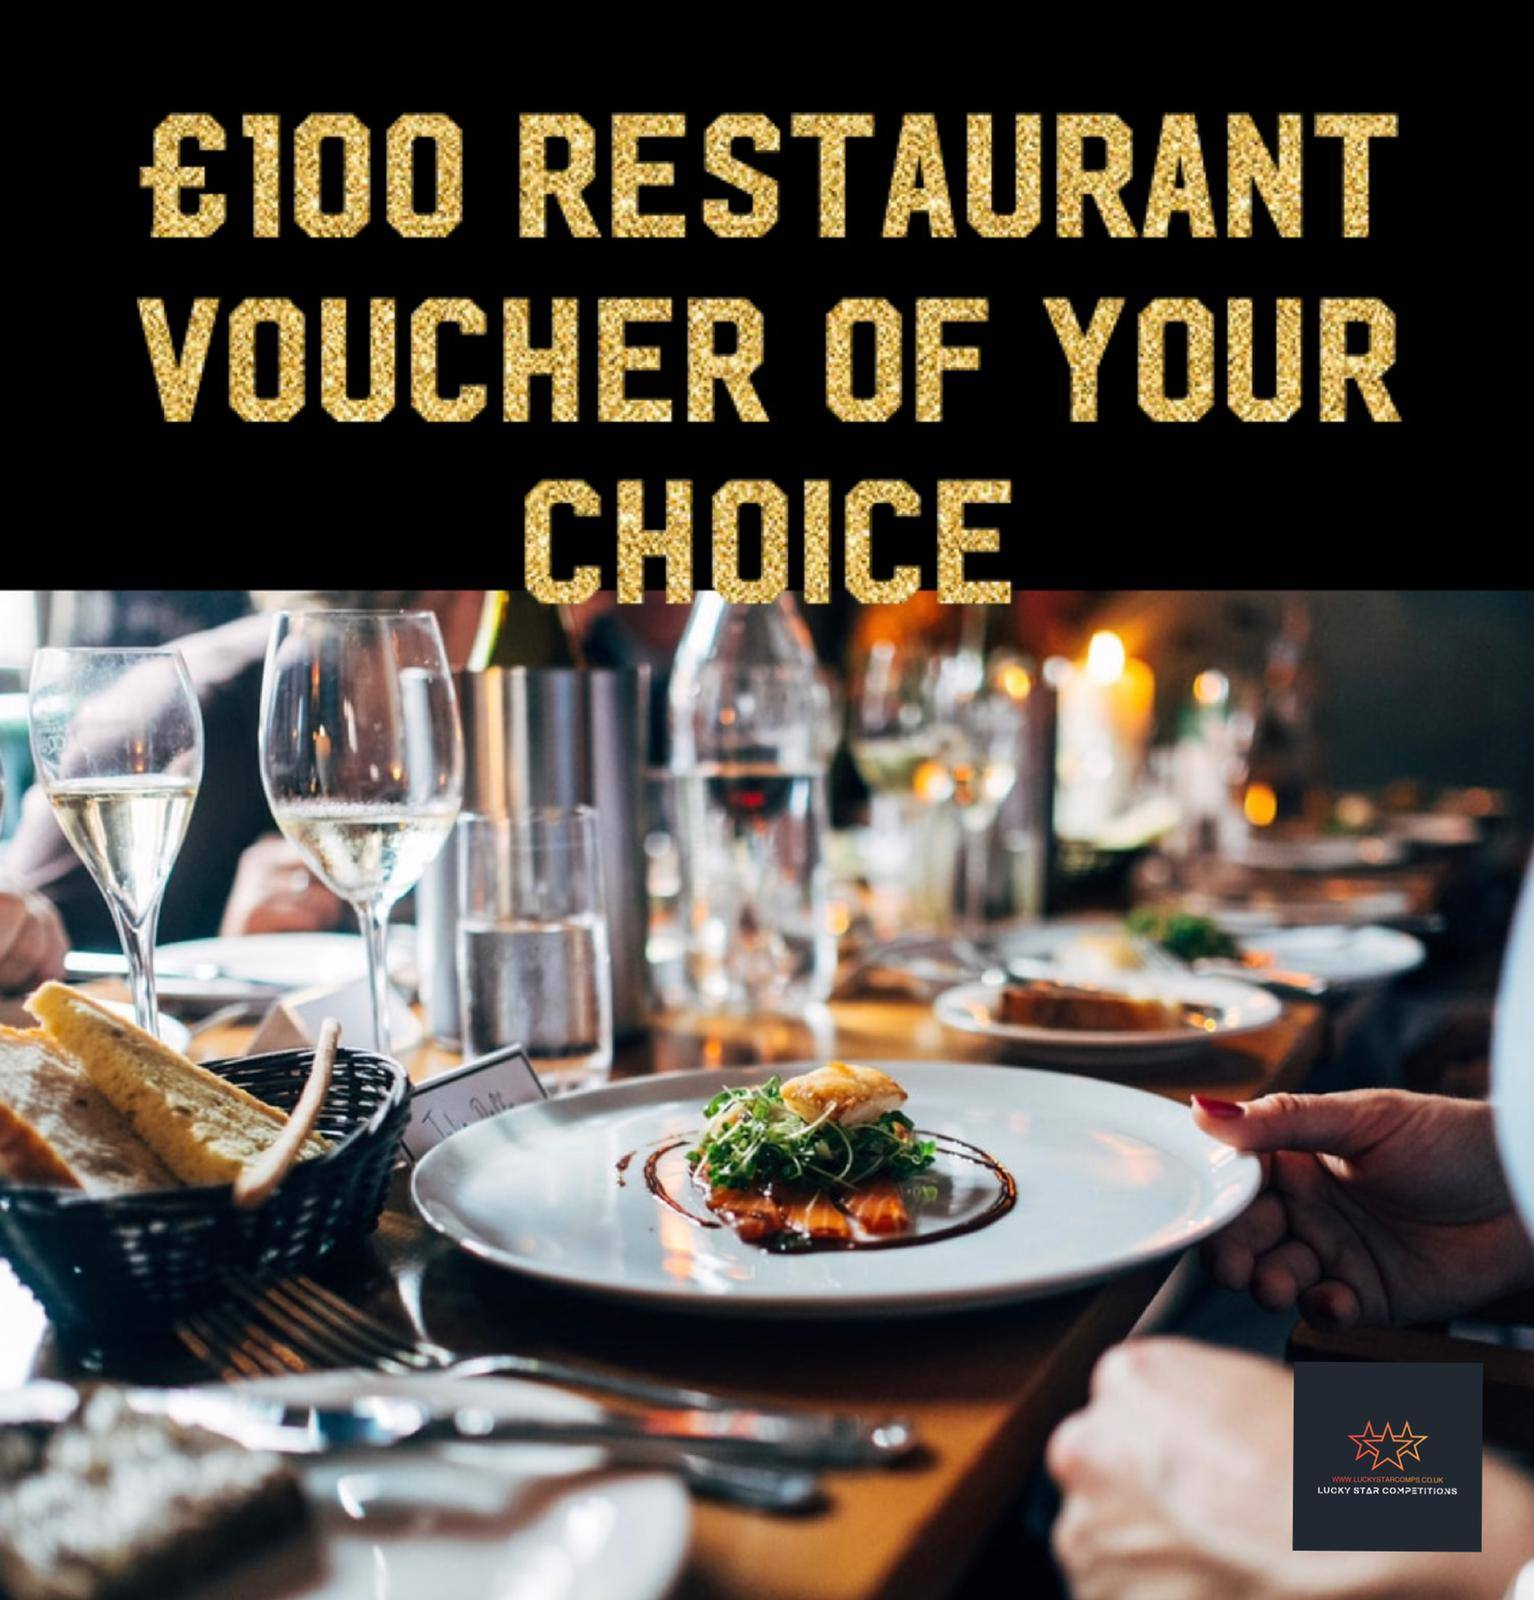 Entry List - Win £100 Restaurant Voucher of Your Choice